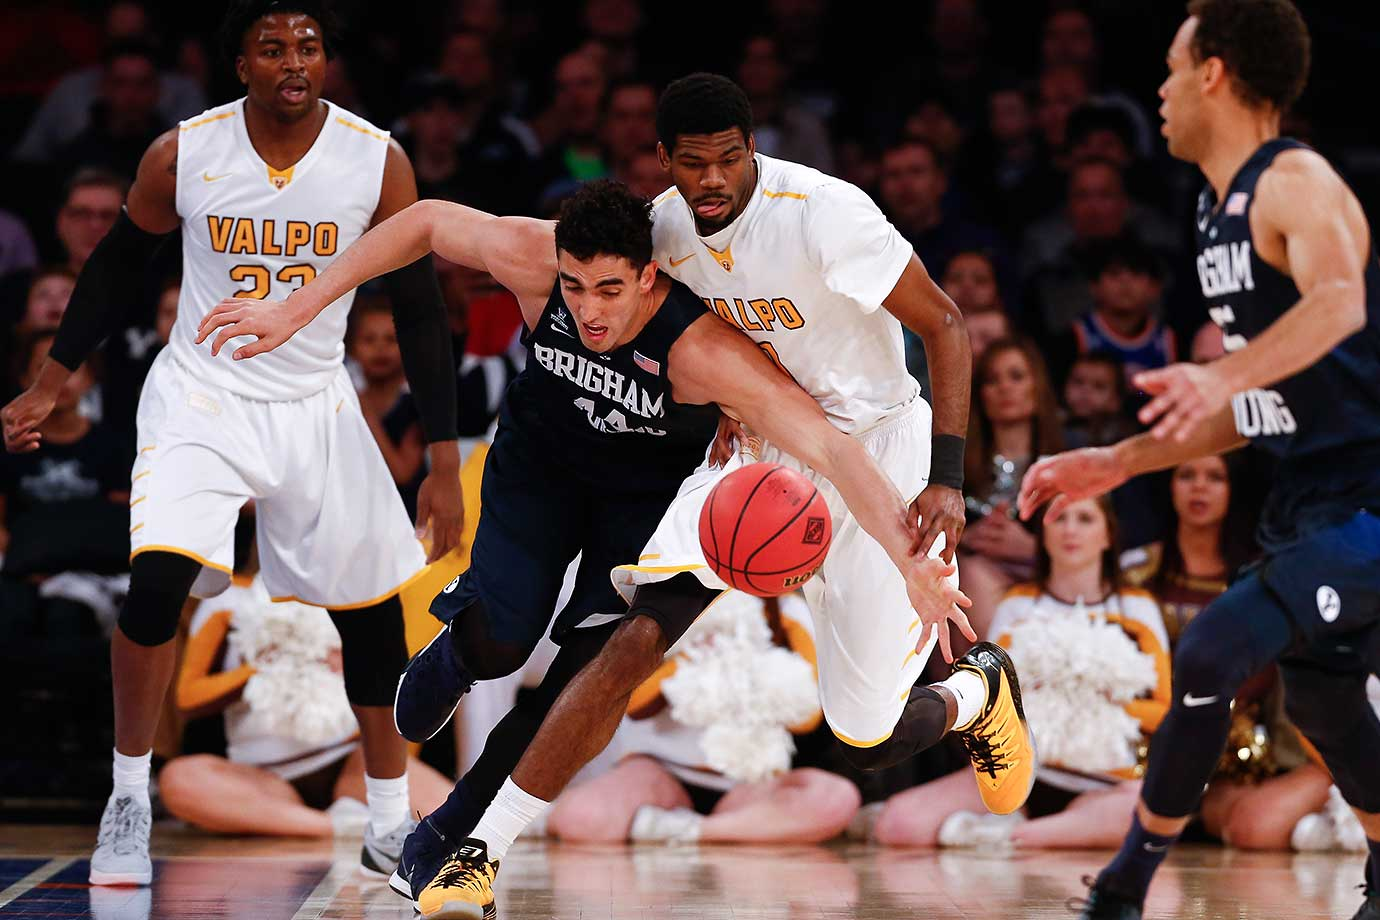 Corbin Kaufusi of Brigham Young fights for the ball with E. Victor Nickerson of Valparaiso during their NIT Championship semifinal game.